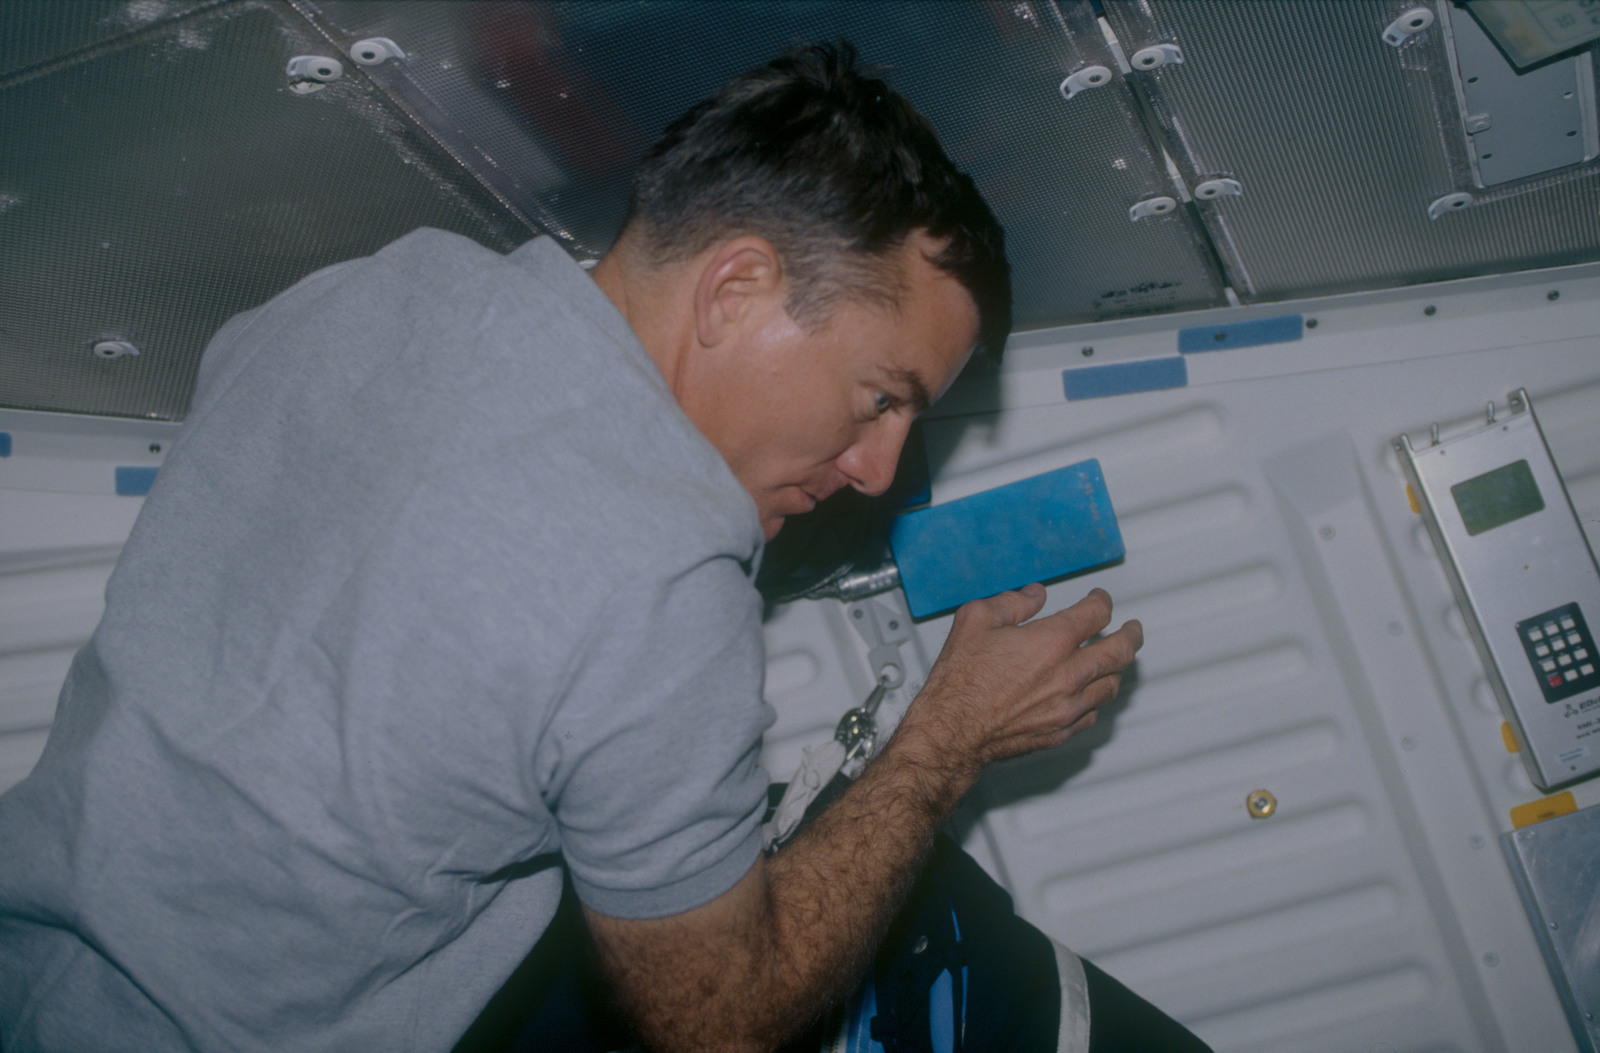 STS053-02-010 - STS-053 - Voss in the MDDK setting up an unidentified experiment